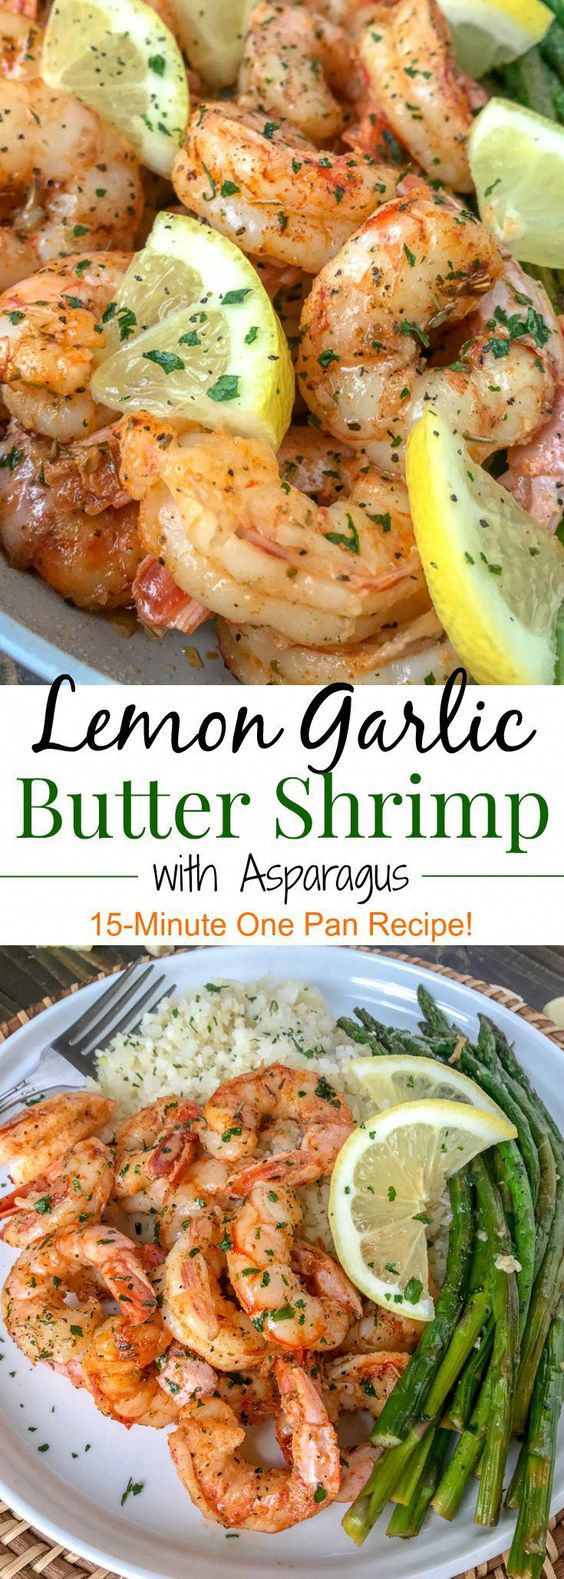 LEMON GARLIC BUTTER SHRIMP WITH ASPARAGUS #recipes #healthymeals #food #foodporn #healthy #yummy #instafood #foodie #delicious #dinner #breakfast #dessert #lunch #vegan #cake #eatclean #homemade #diet #healthyfood #cleaneating #foodstagram